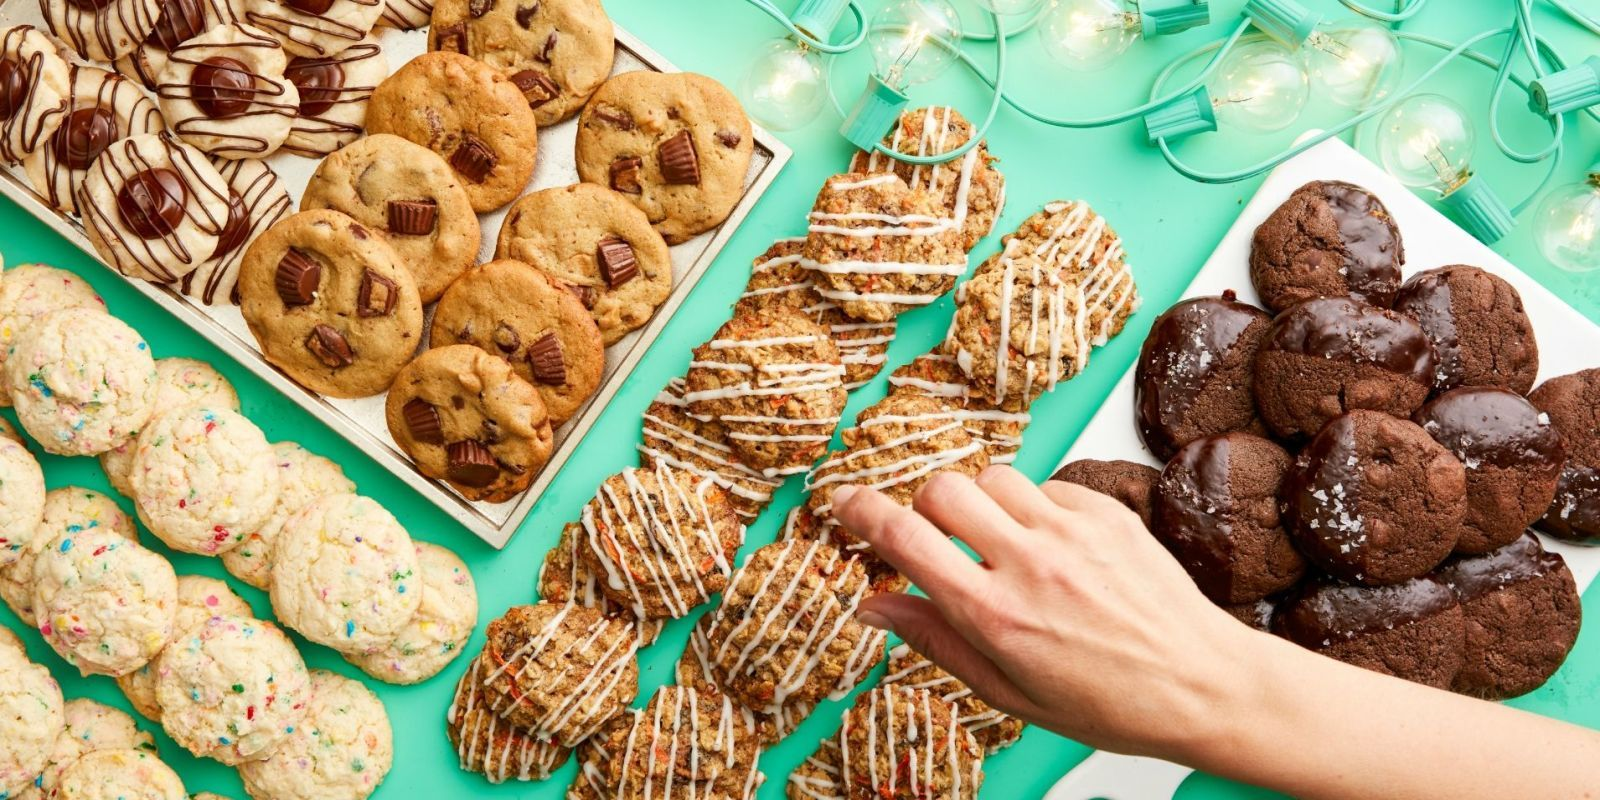 12 Cookie Hacks You Need to Know Before You Bake ANYTHING This Christmas